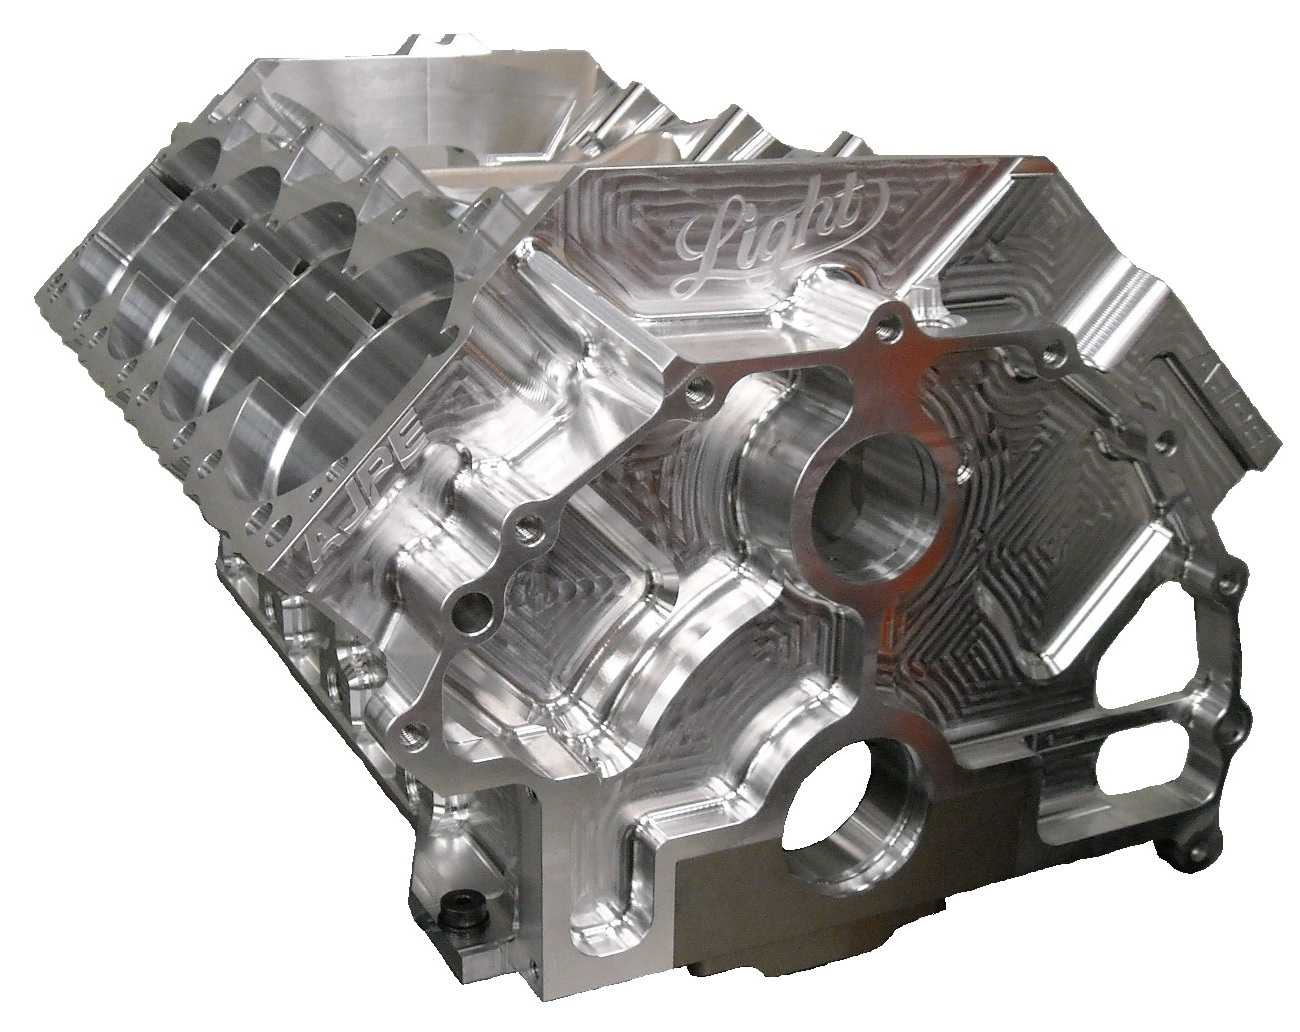 TFX Light Alky Hemi Blocks